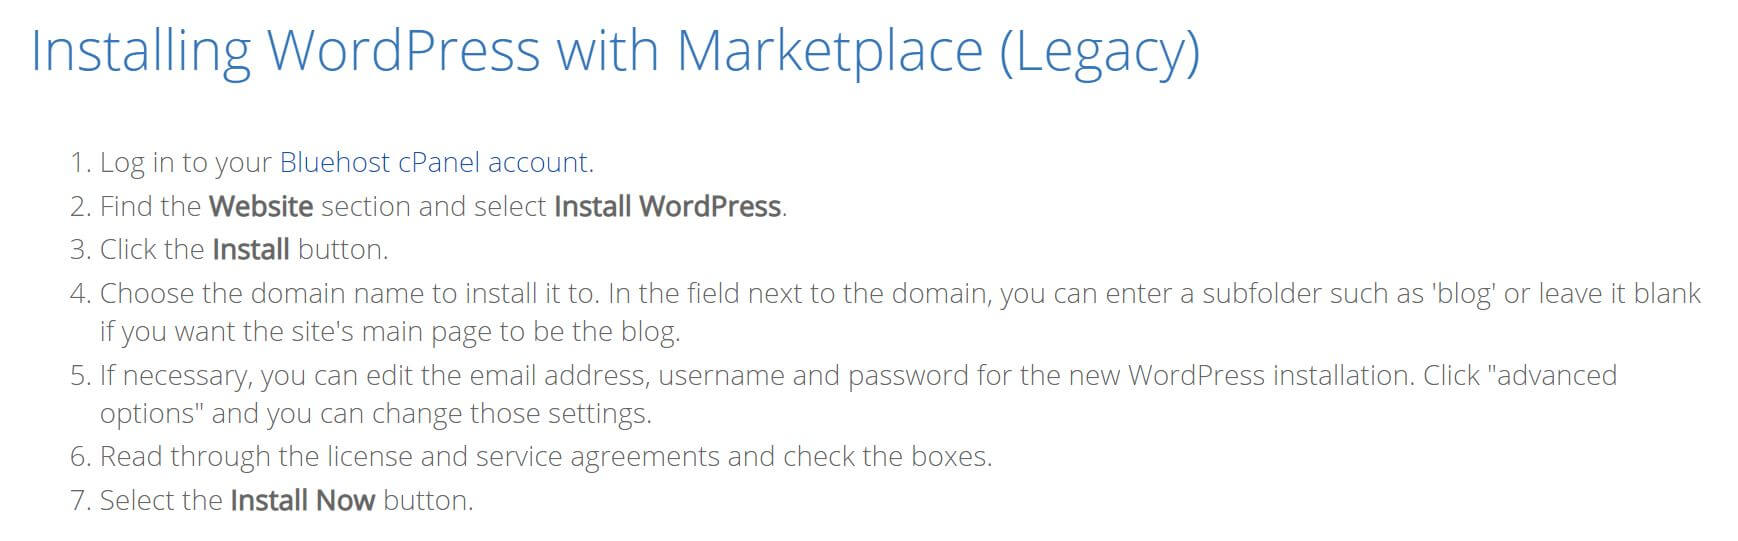 bluehost - installing wordpress with marketplace